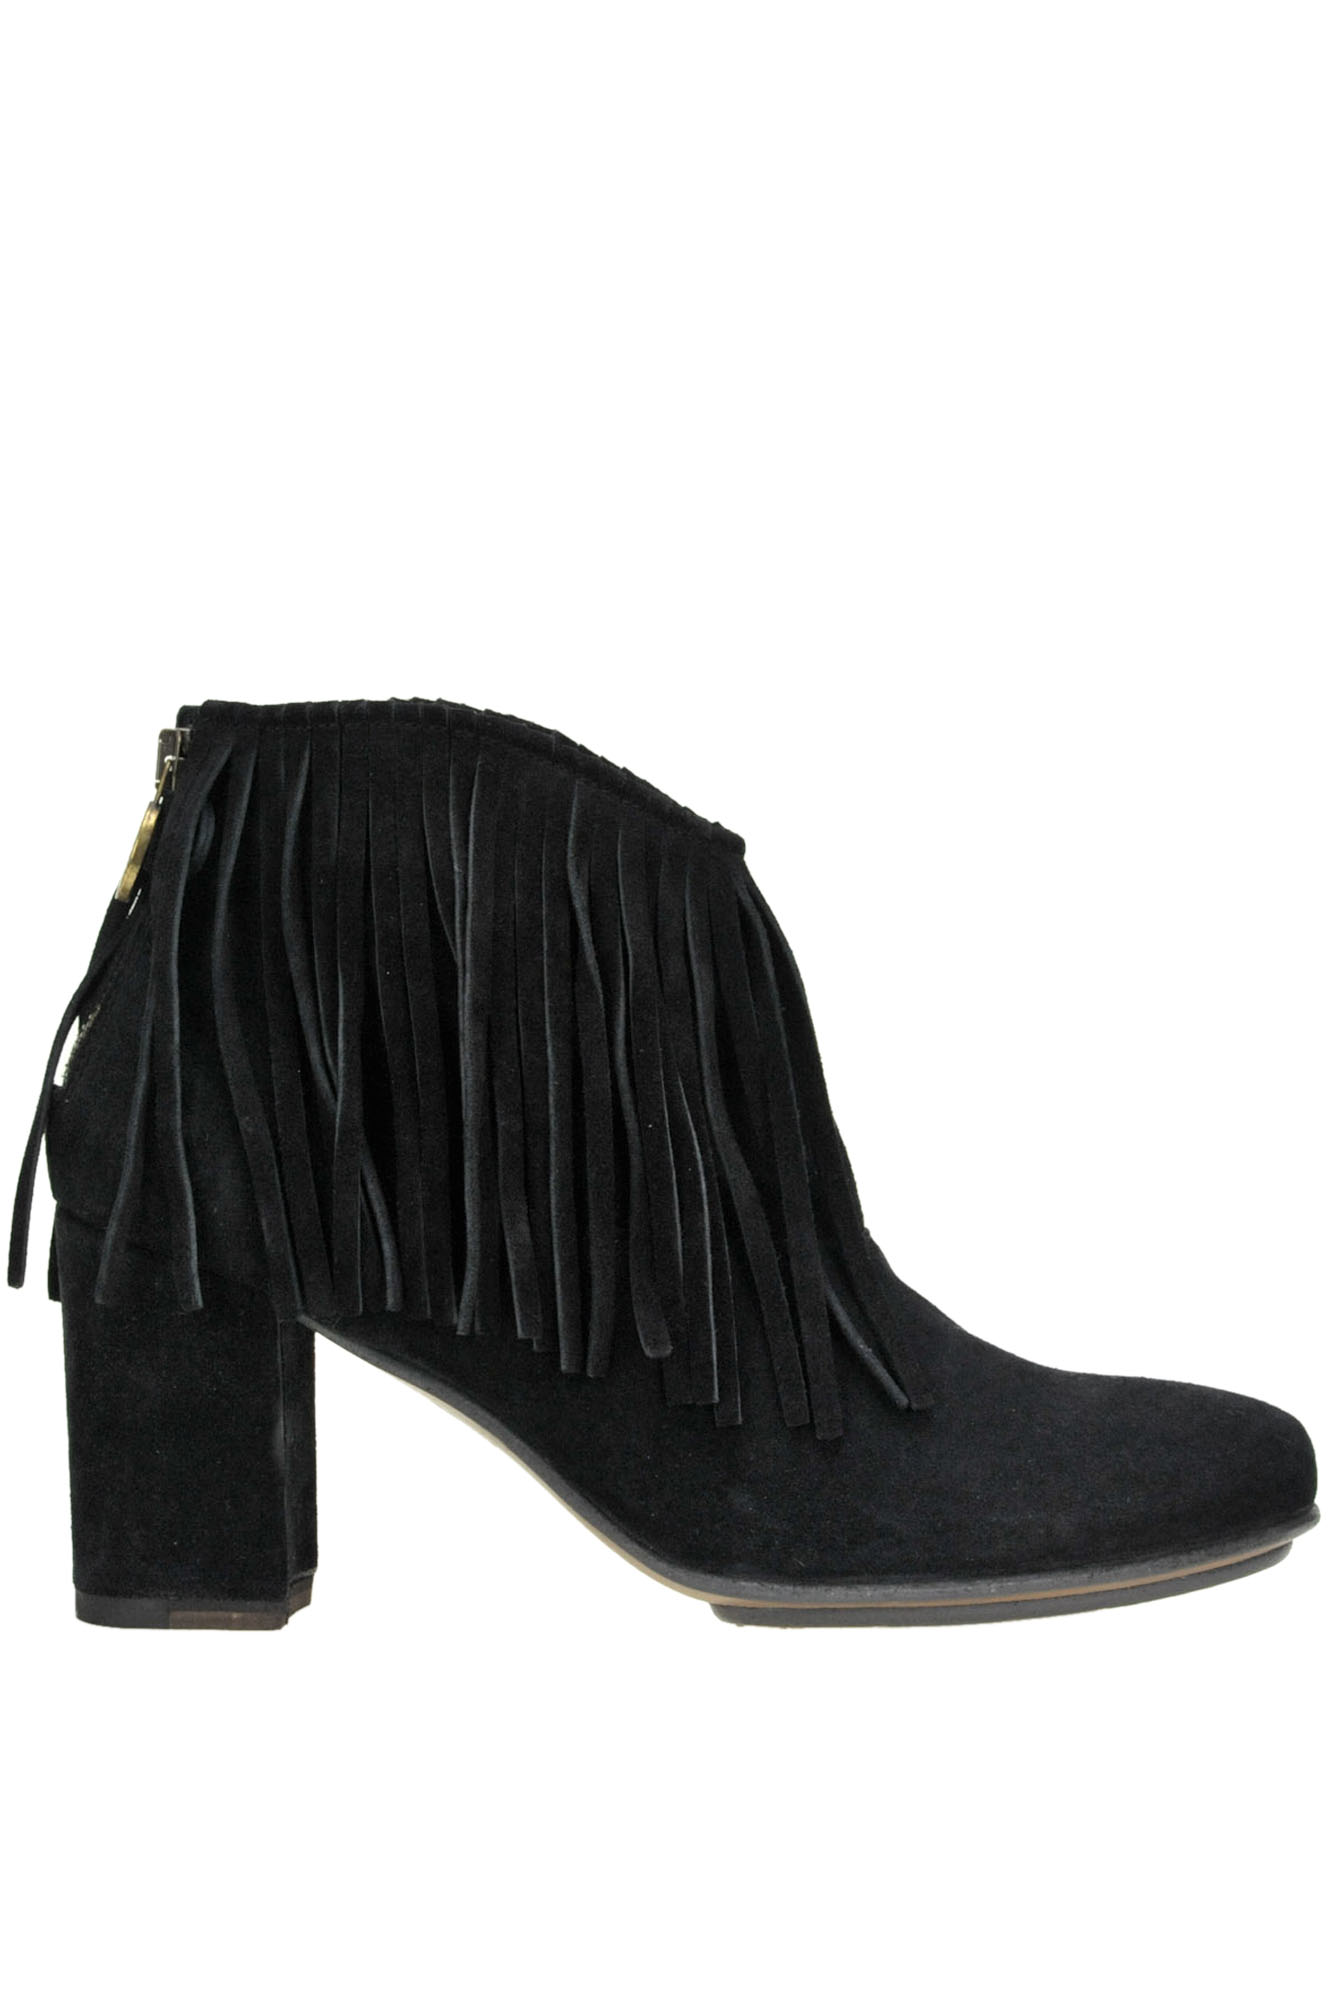 Fiorentini + Baker IFFA FRINGED SUEDE ANKLE BOOTS